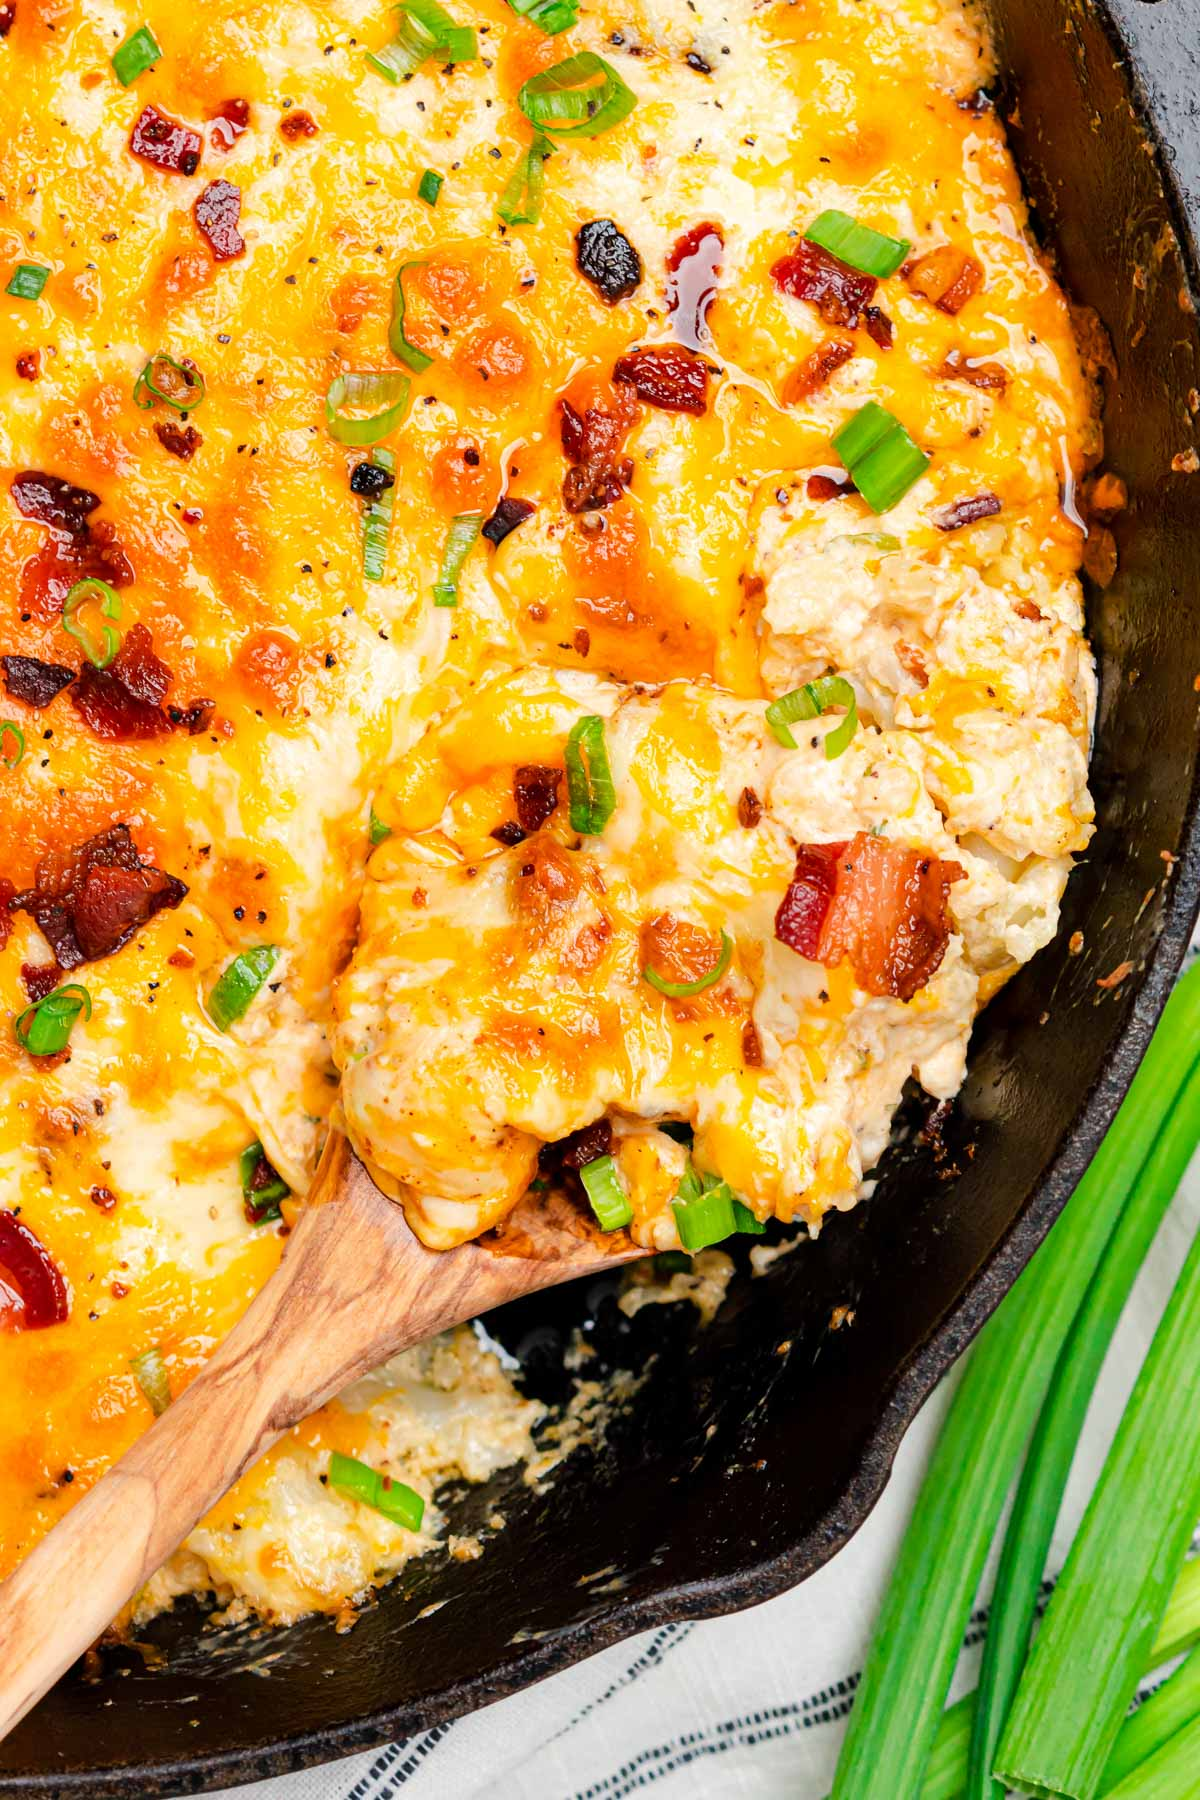 Keto Cauliflower Casserole closeup with a spoon scooping into the casserole to remove a serving.